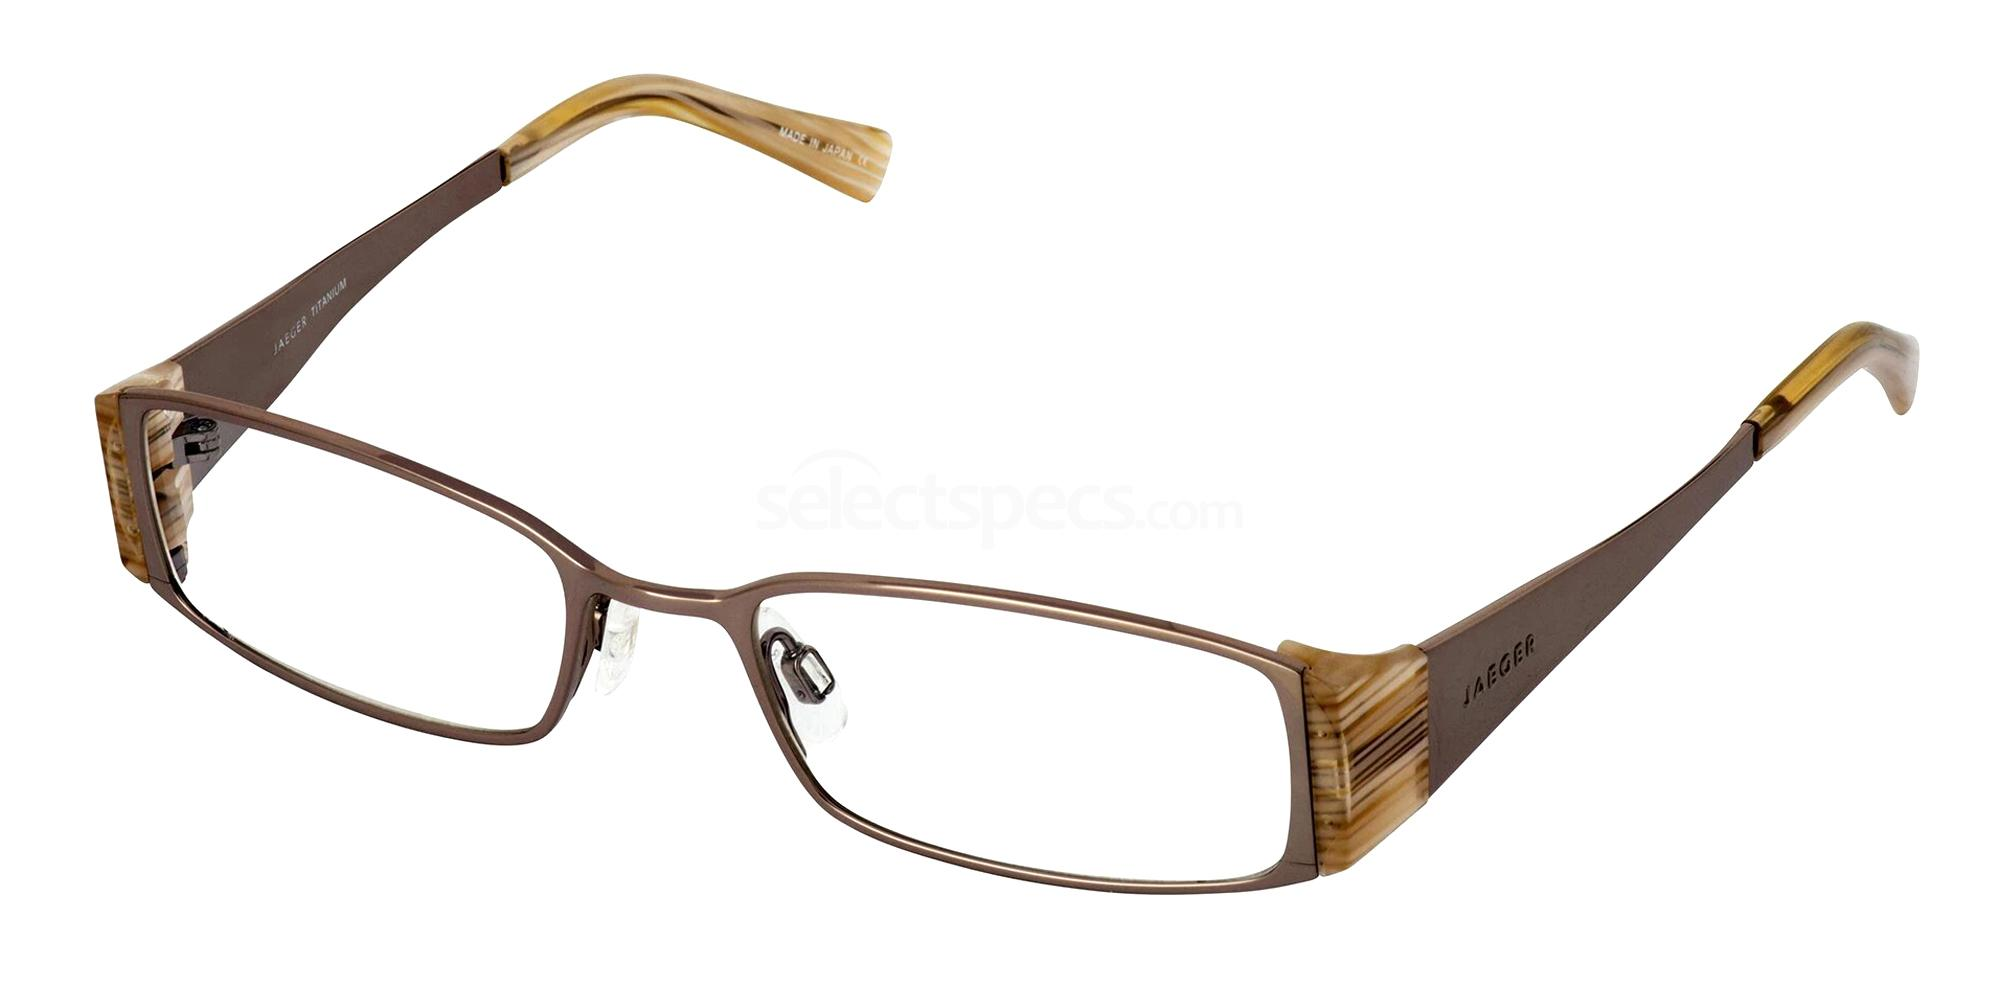 C.71 266 Glasses, Jaeger Pure Titanium